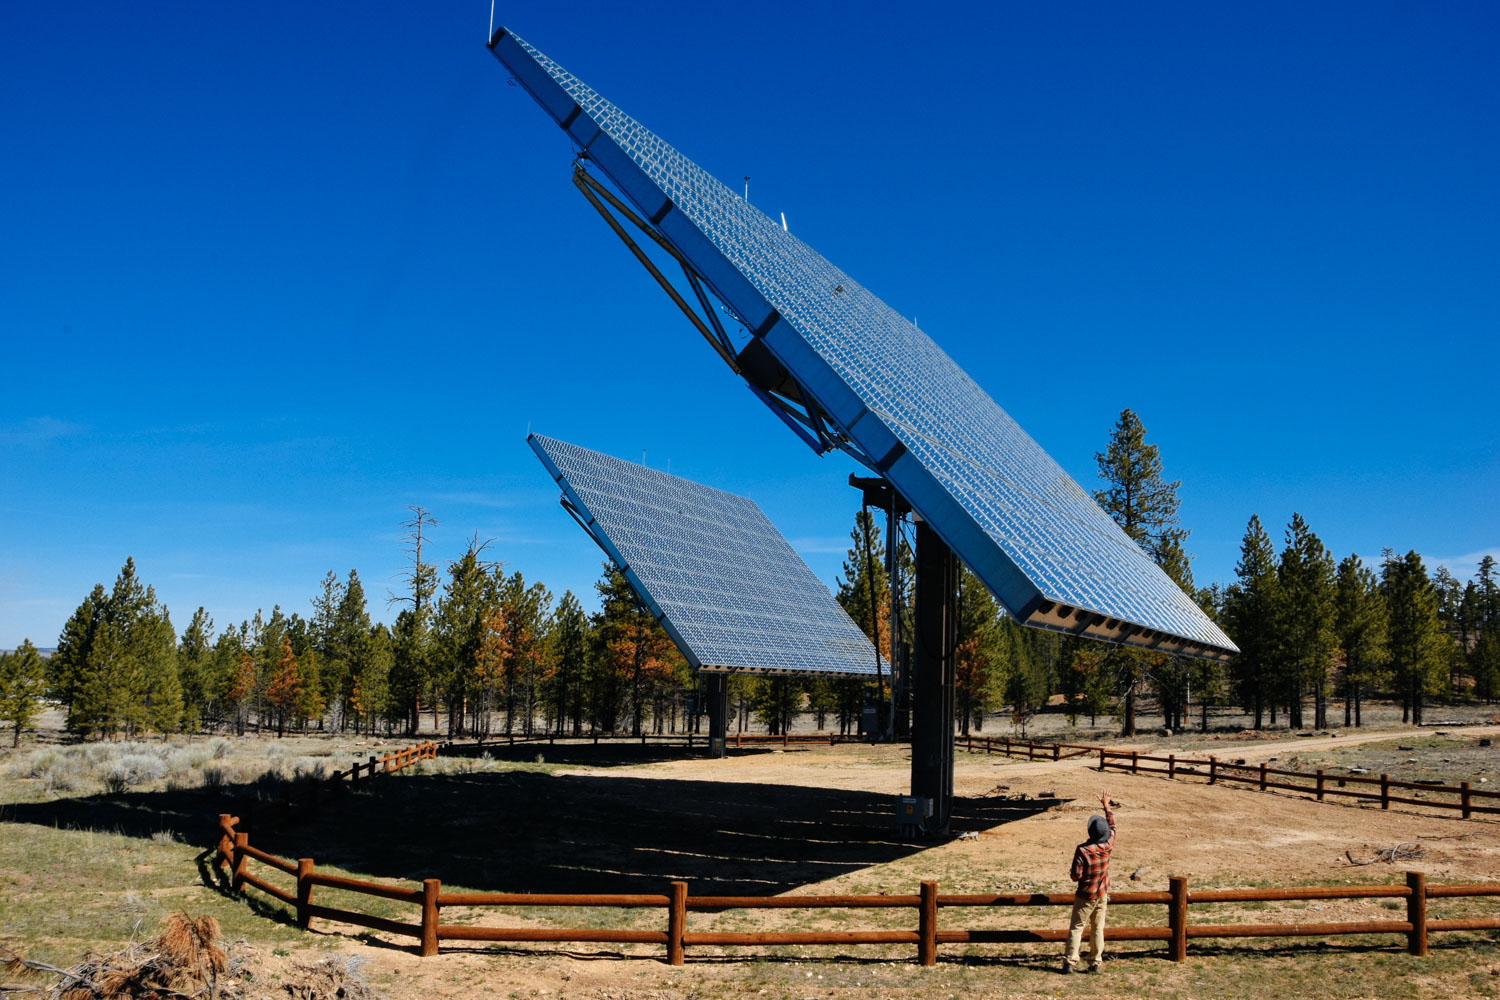 These two sets of solar panels at the visitor center are so badass! 1) They are huge! 2) They track the sun. 3) They are concentrating solar panels. Each cell in the array has a magnifying lens in front of it which the sun has to go through. 4) The panels are kept from overheating by cooling fans built into the array.